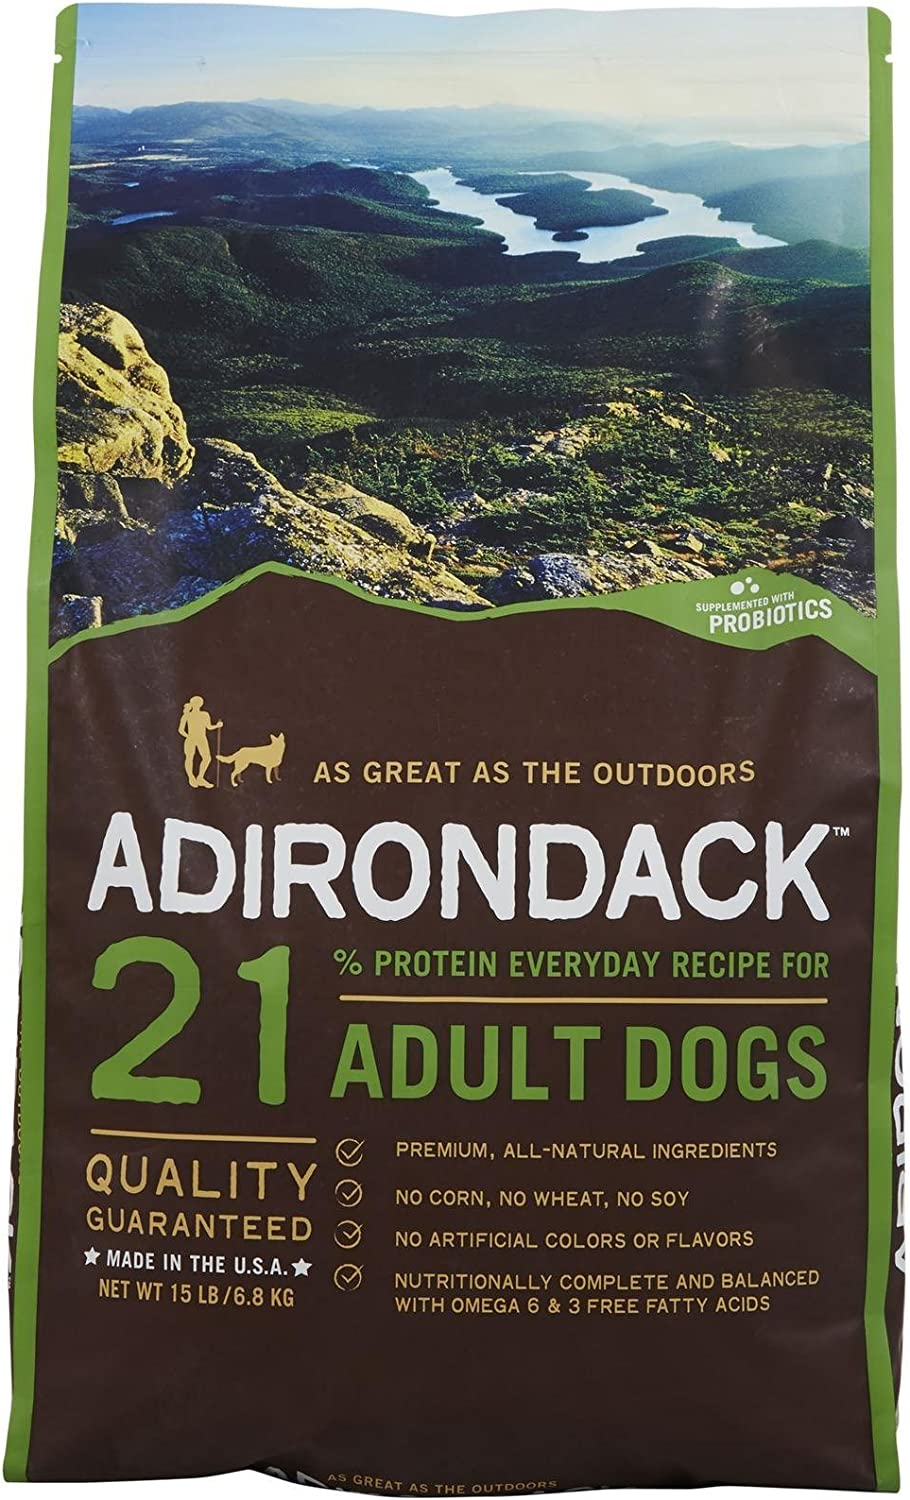 Adirondack Pet Food 22452 21% Protein Everyday Recipe For Adult Dogs, 15Lb.